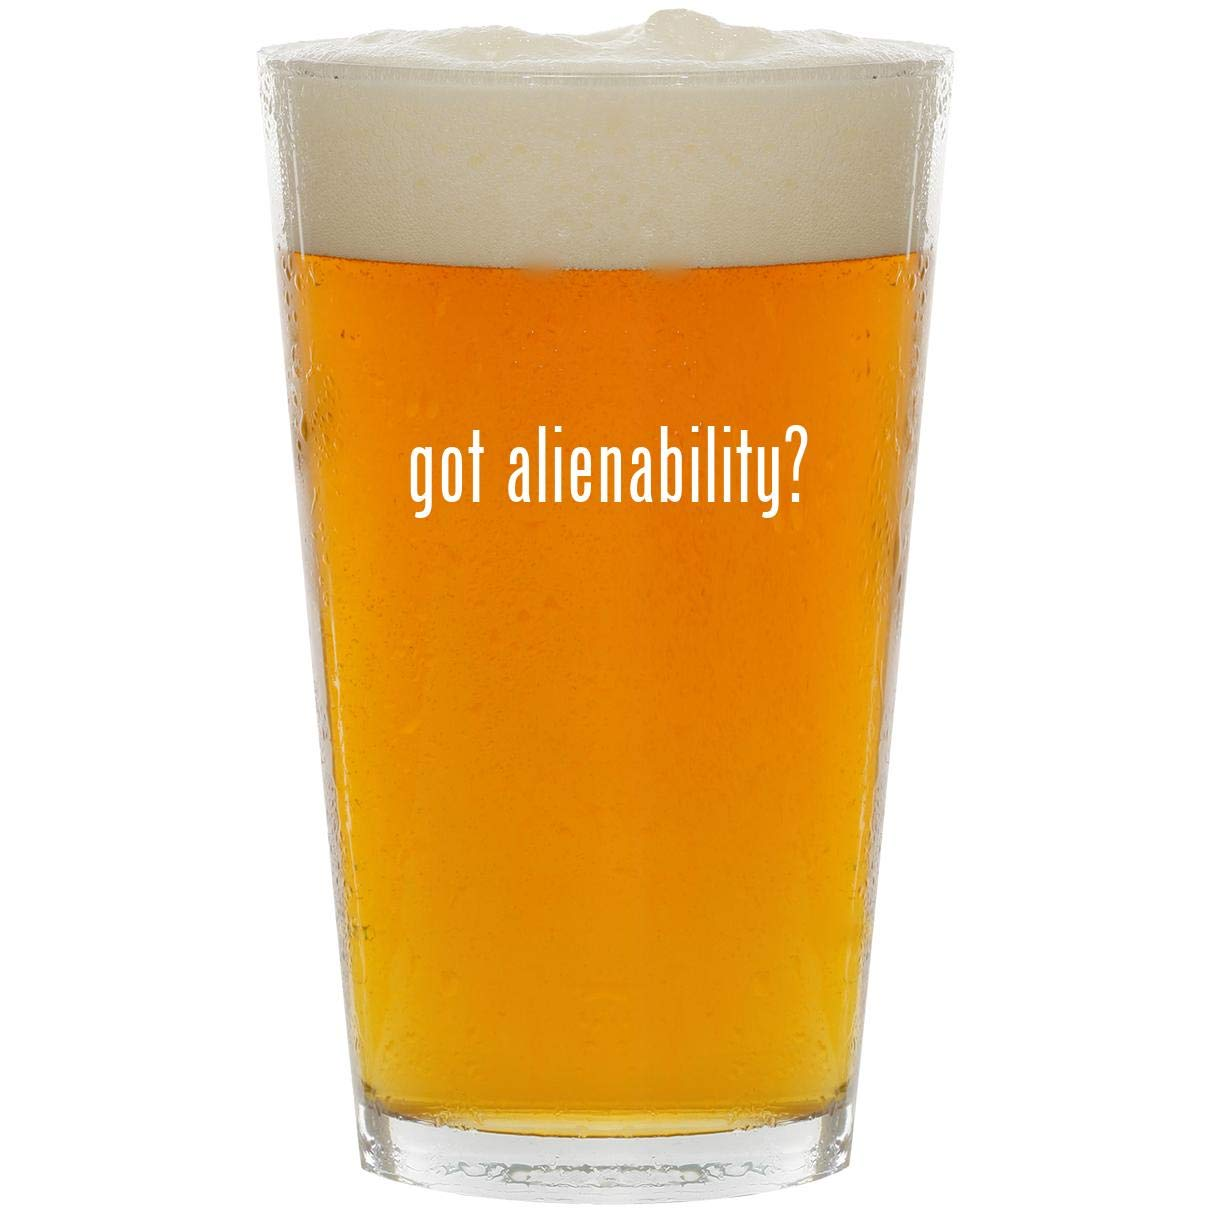 got alienability? - Glass 16oz Beer Pint